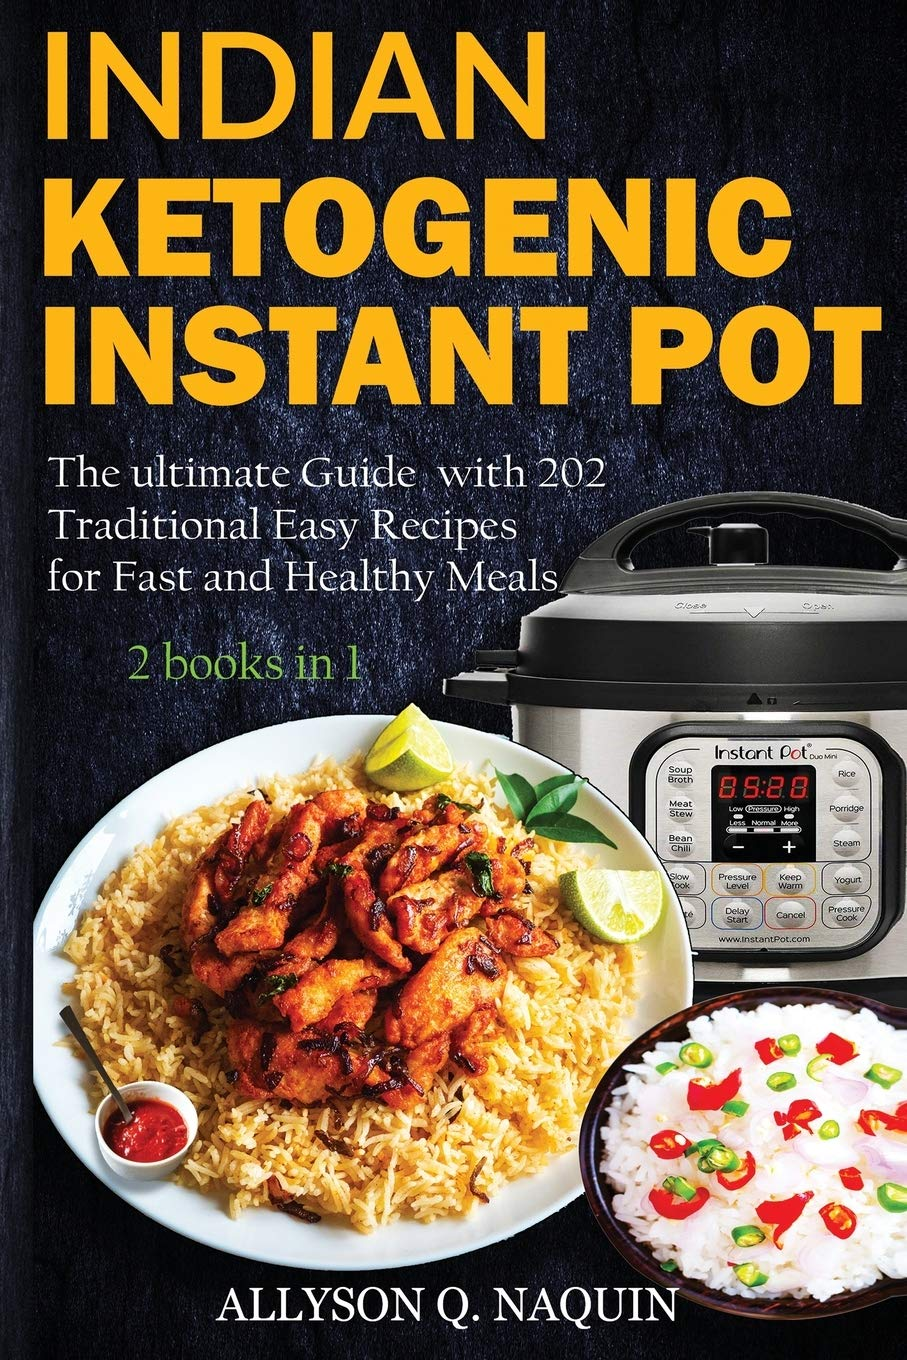 Download Indian Instant Pot & Ketogenic Diet 2 Books In 1: Discover The Indian Tradition And Keto Instant Pot With Over 201 Delicio... 